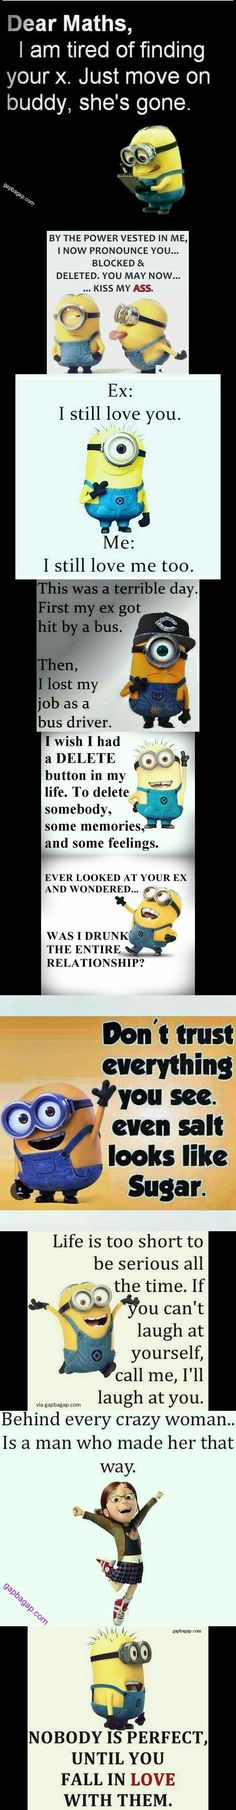 Top 10 Funny Quotes About Exes By The #Minions Memes About Exes, Funny Quotes About Exes, Super Funny Quotes, Minion Jokes, Minions Quotes, Funny Minion, Disneyland, Funny Tumblr Comments, Funny Happy